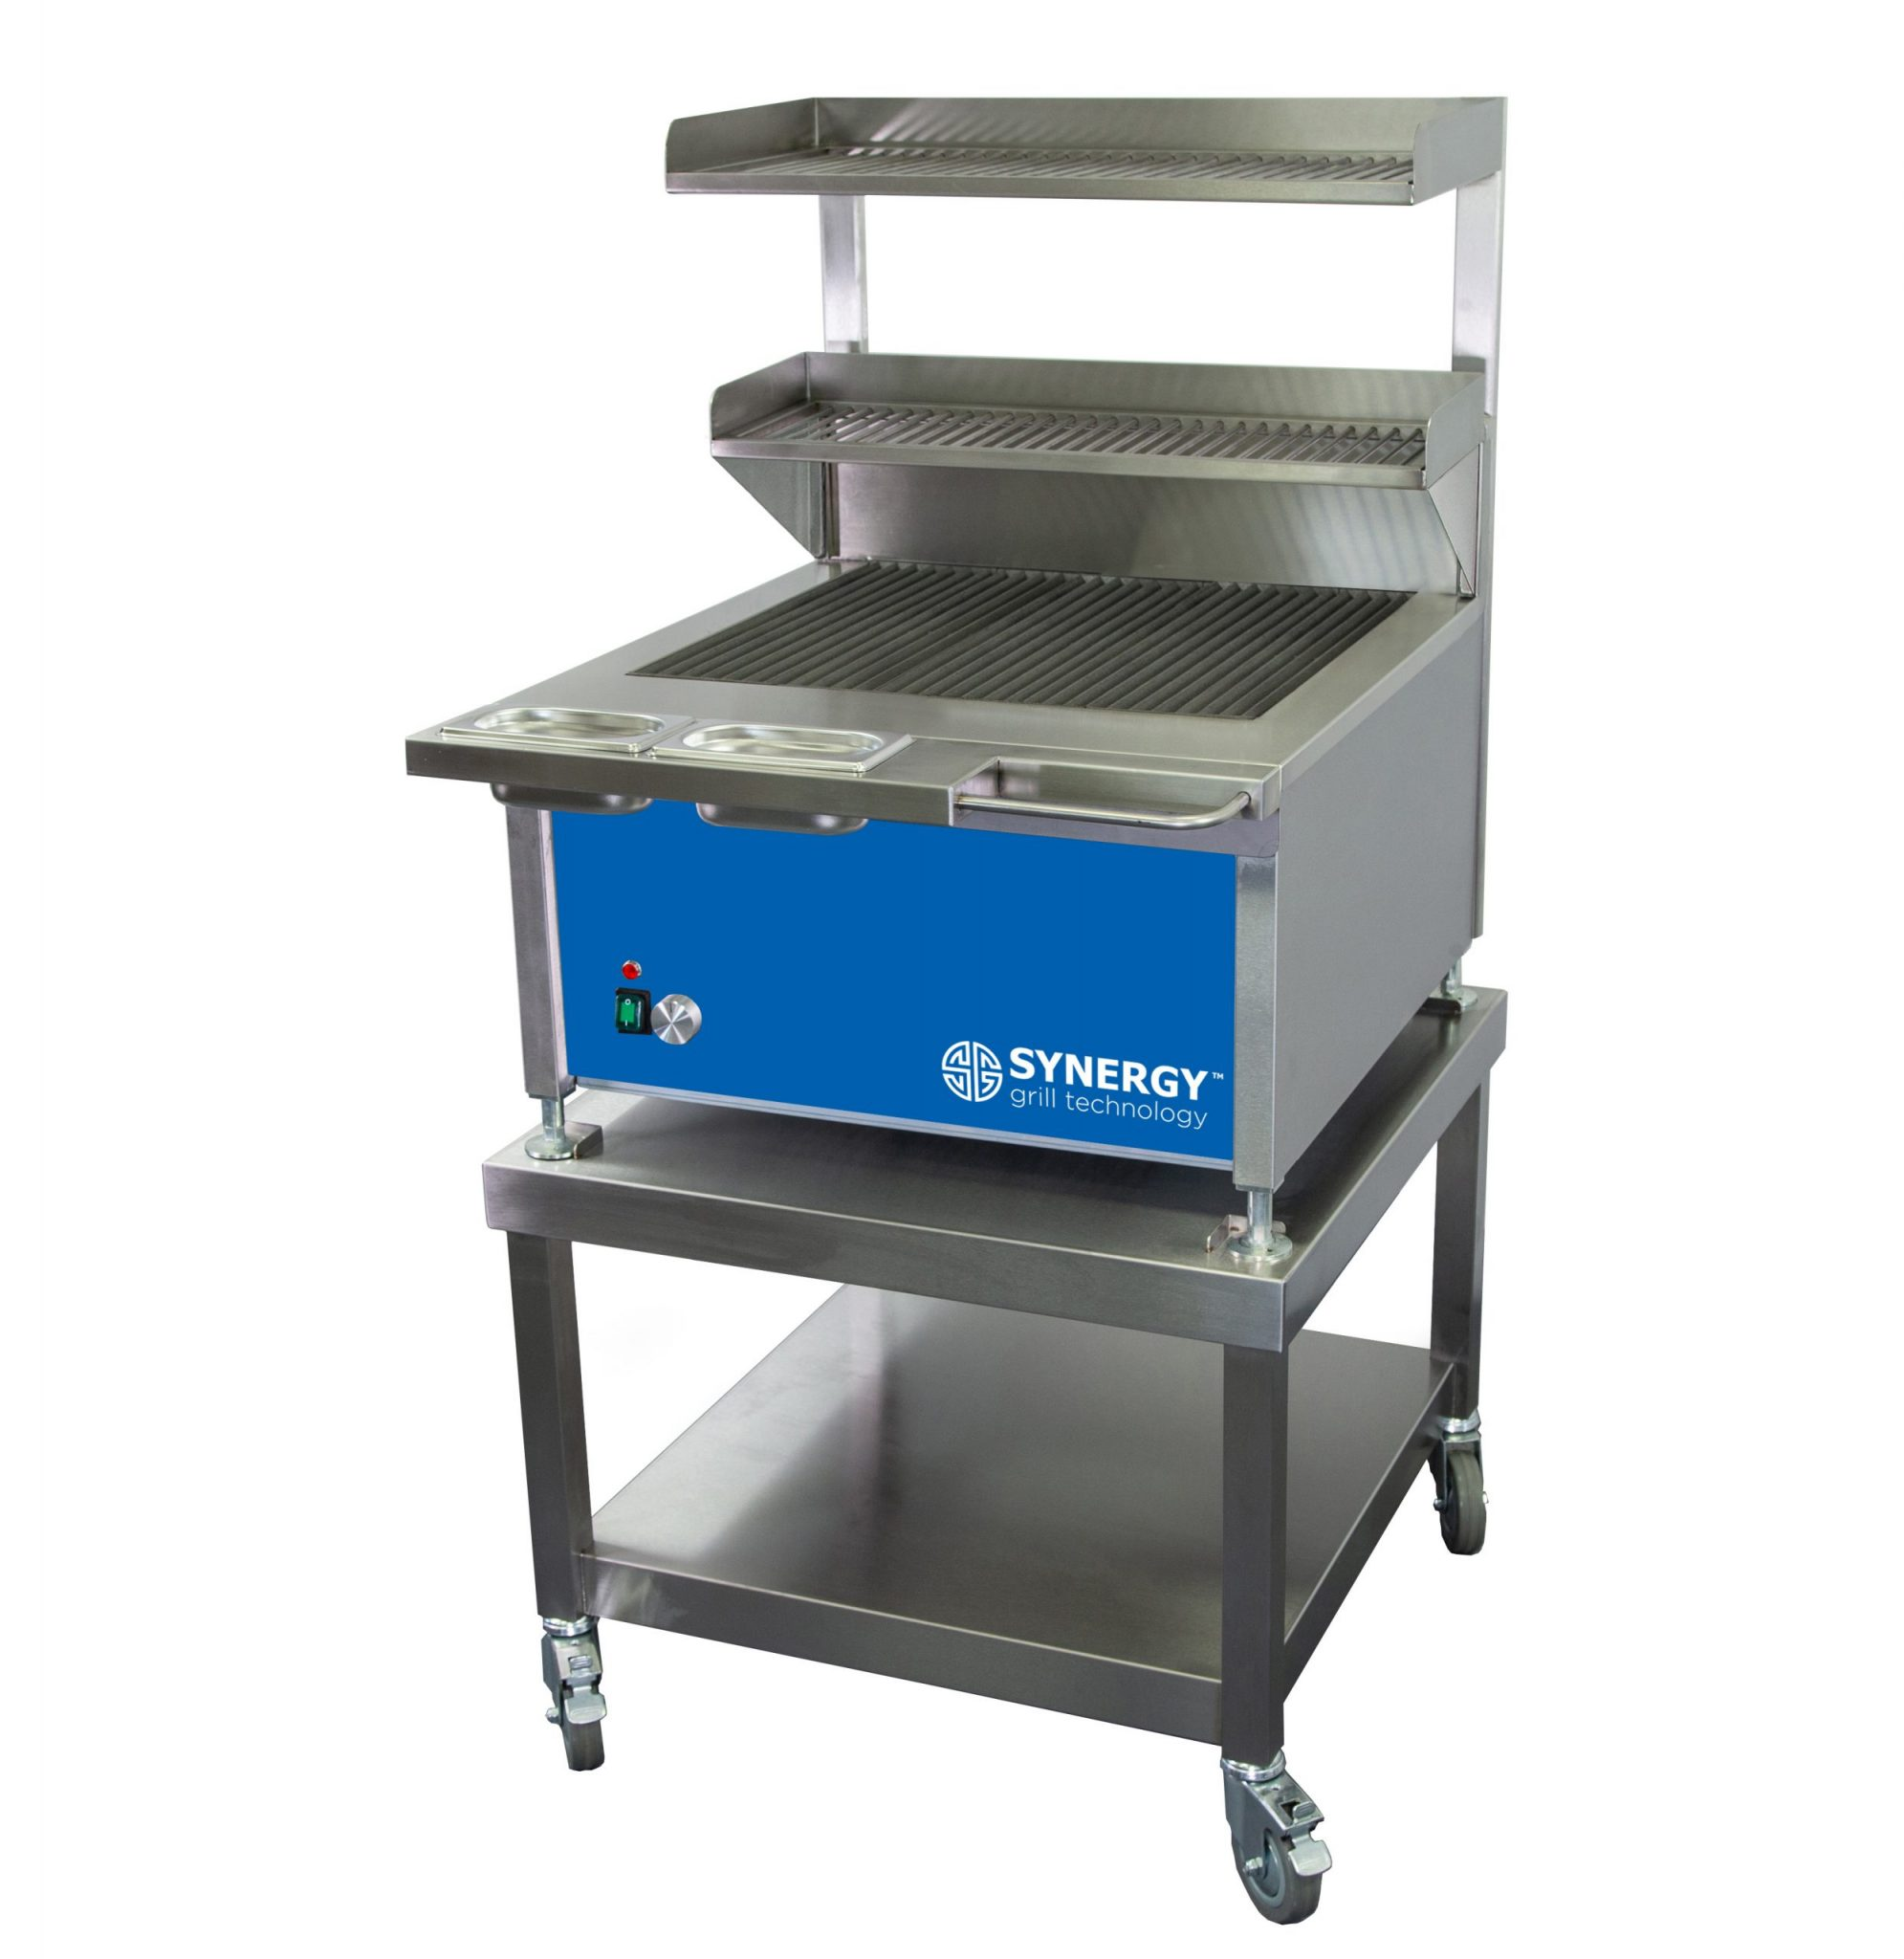 Synergy Grill Trilogy ST630 Blue with Mobile Table